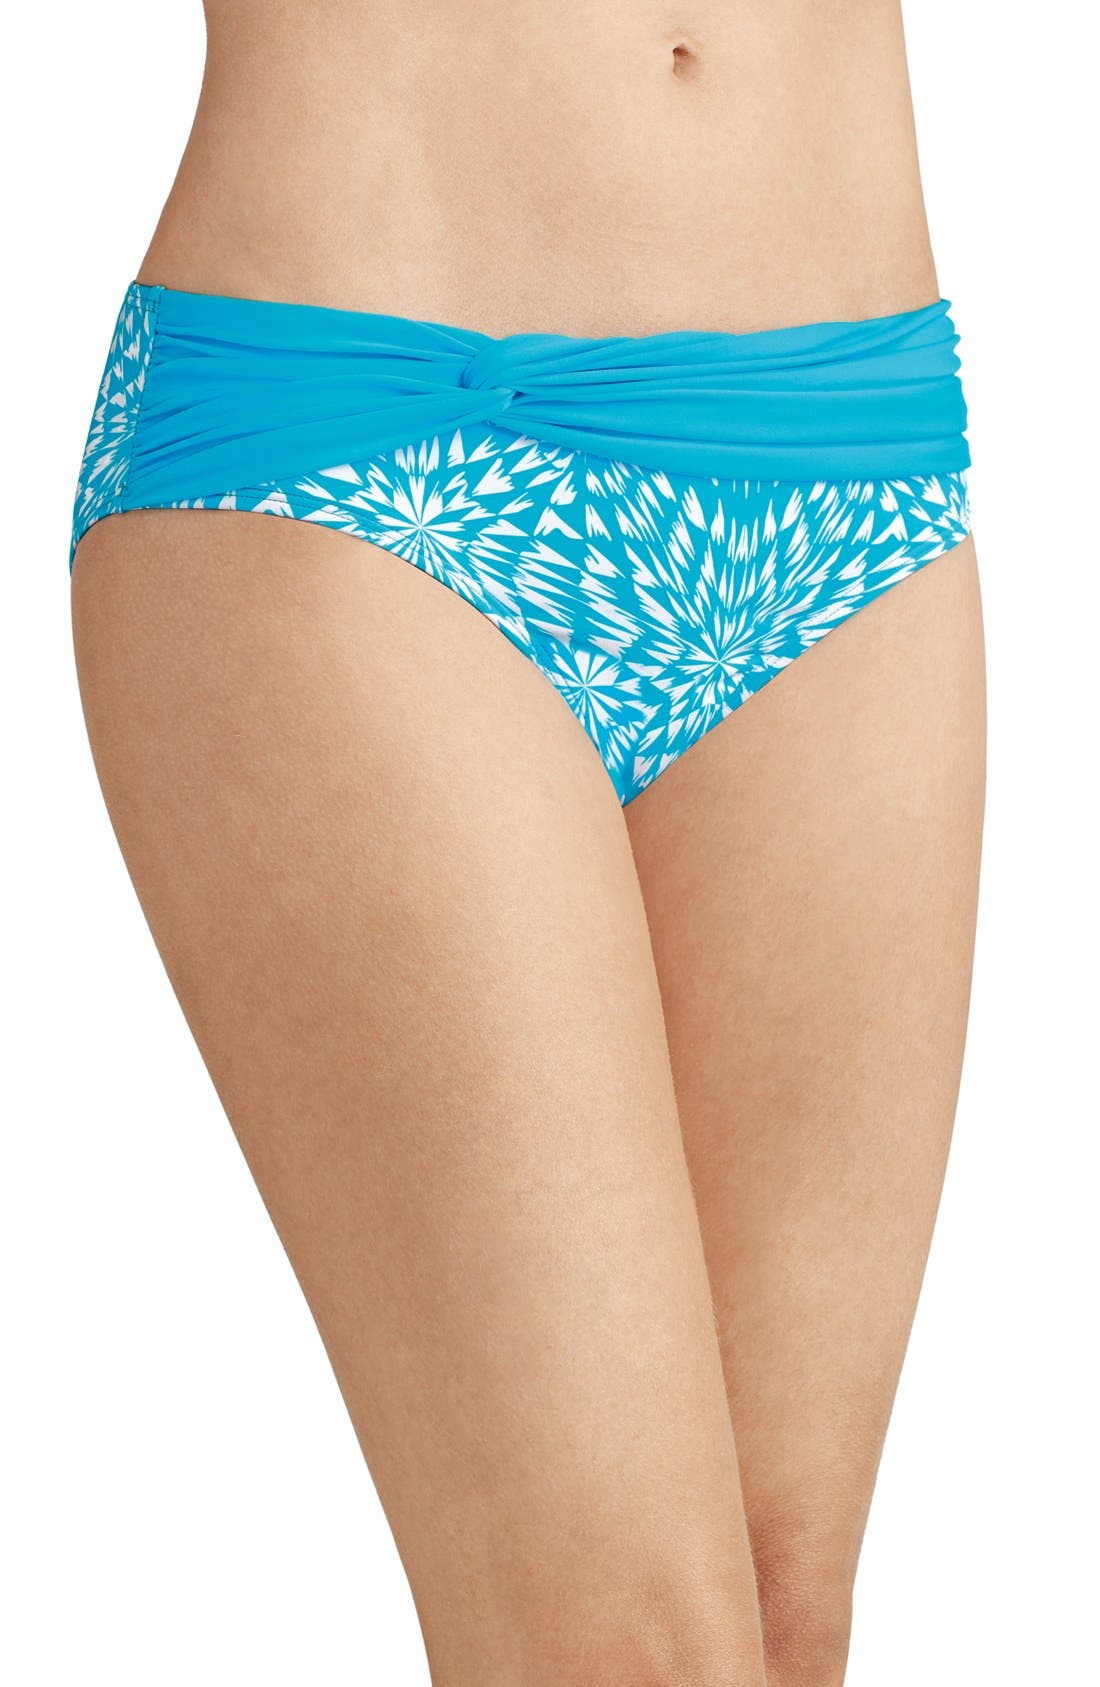 'Hawaii' Swim Briefs,                             Main thumbnail 1, color,                             Turquoise/ White